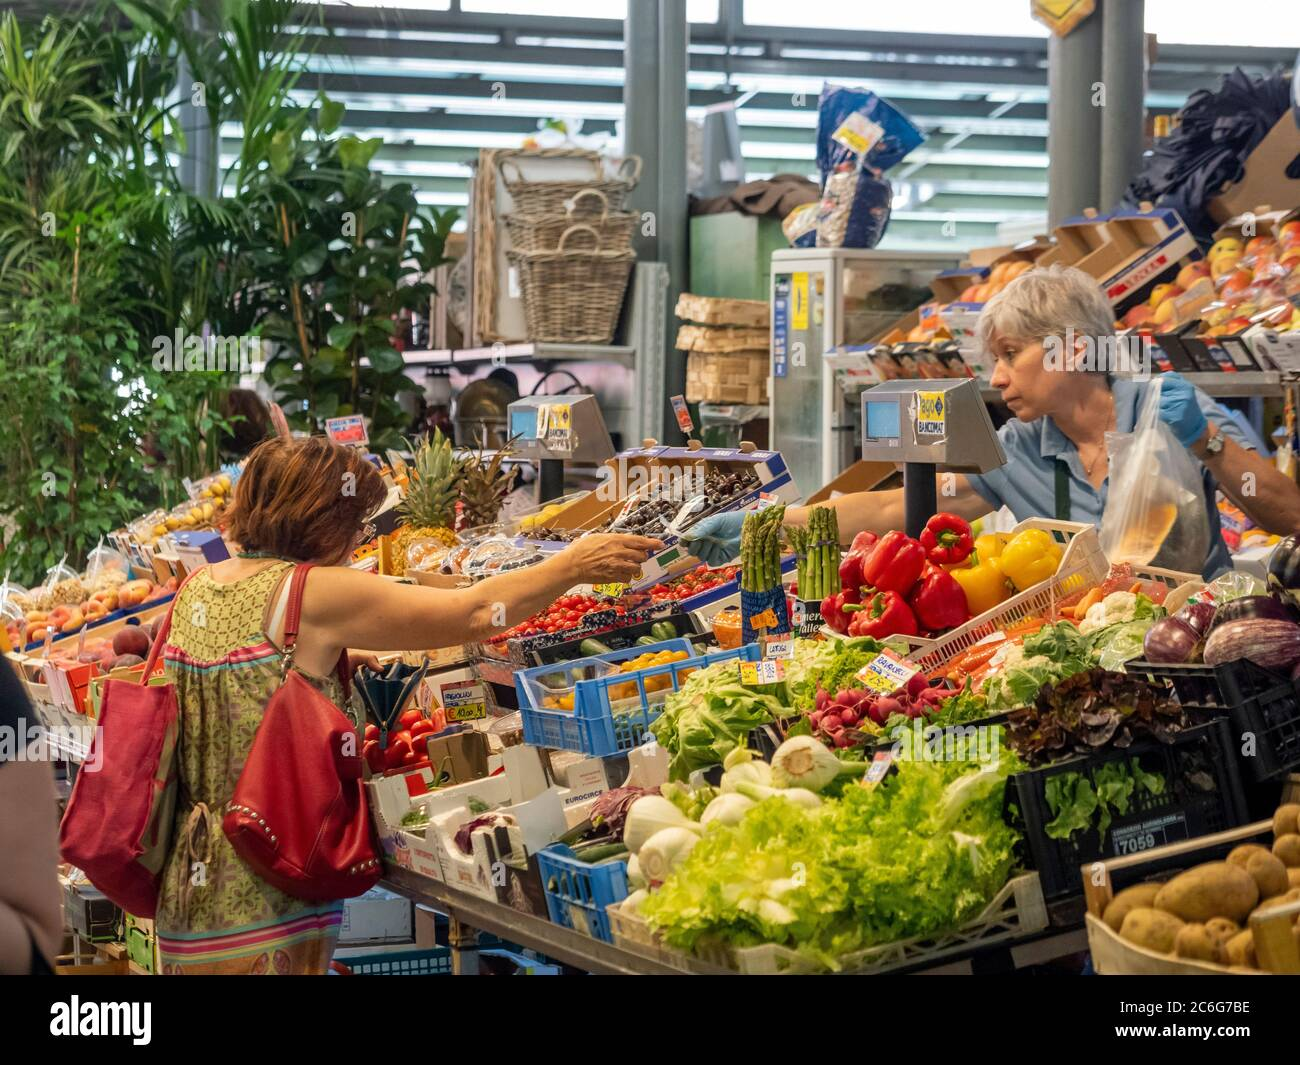 Customer paying for her Fruit and Vegetables on a stall in Mercato Albinelli, Modena, Italy. Stock Photo